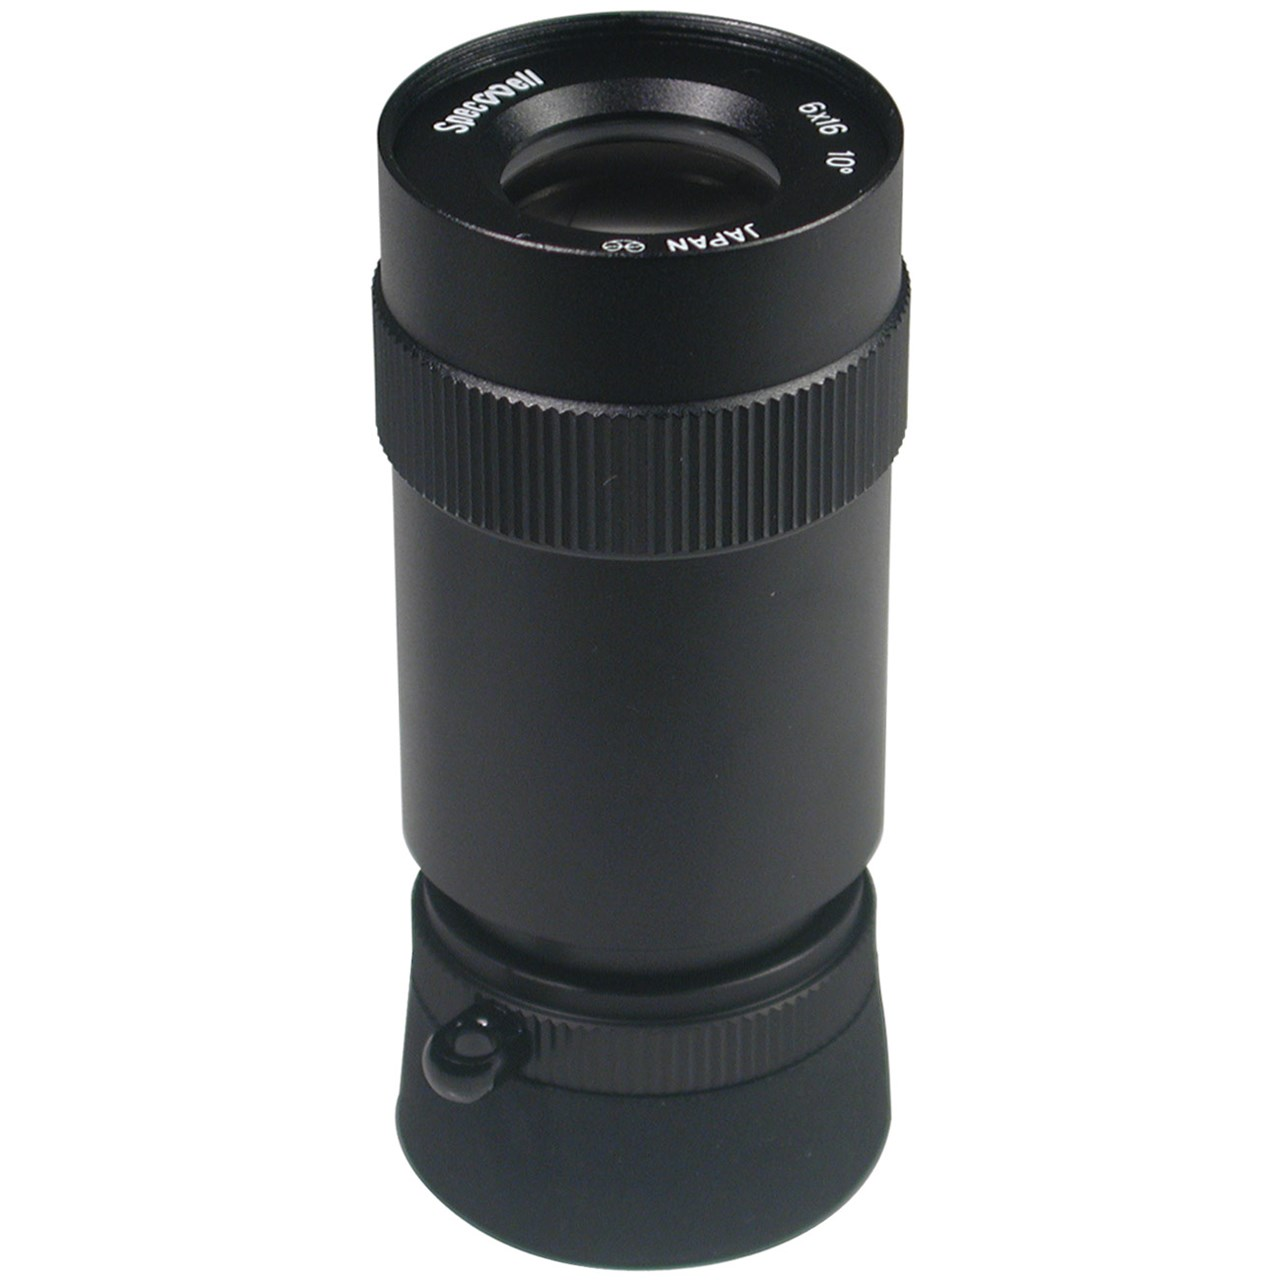 Click here to buy Monocular Specwell 6x 16mm by MaxiAids.